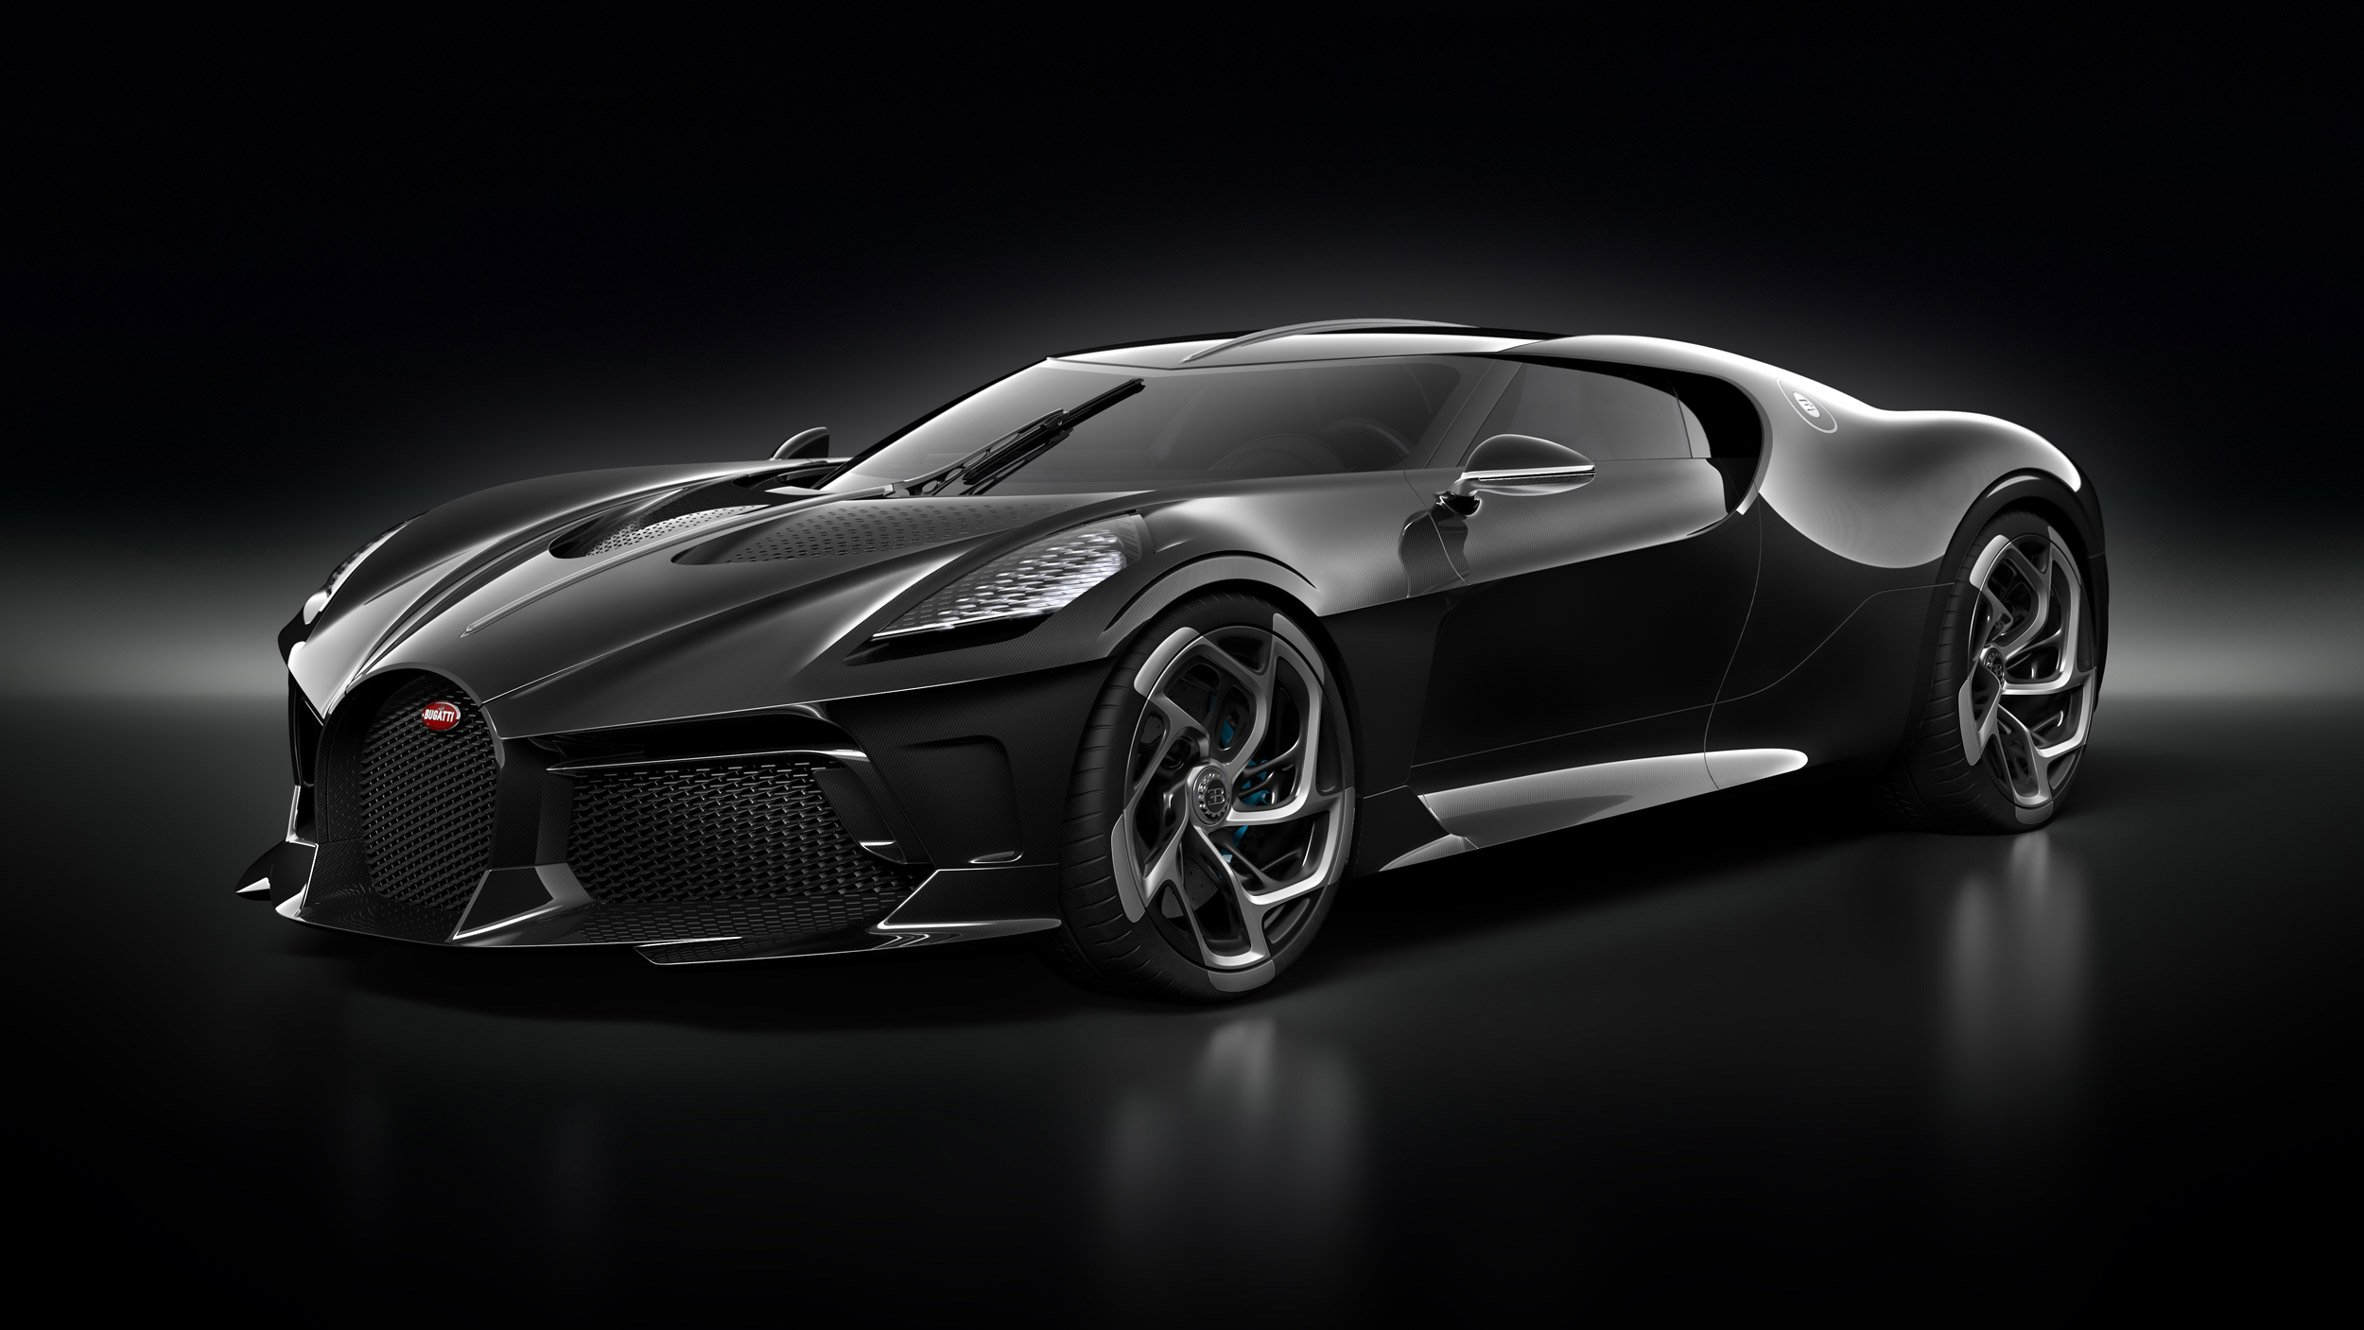 Worlds most expensive car is bugattis la voiture noire